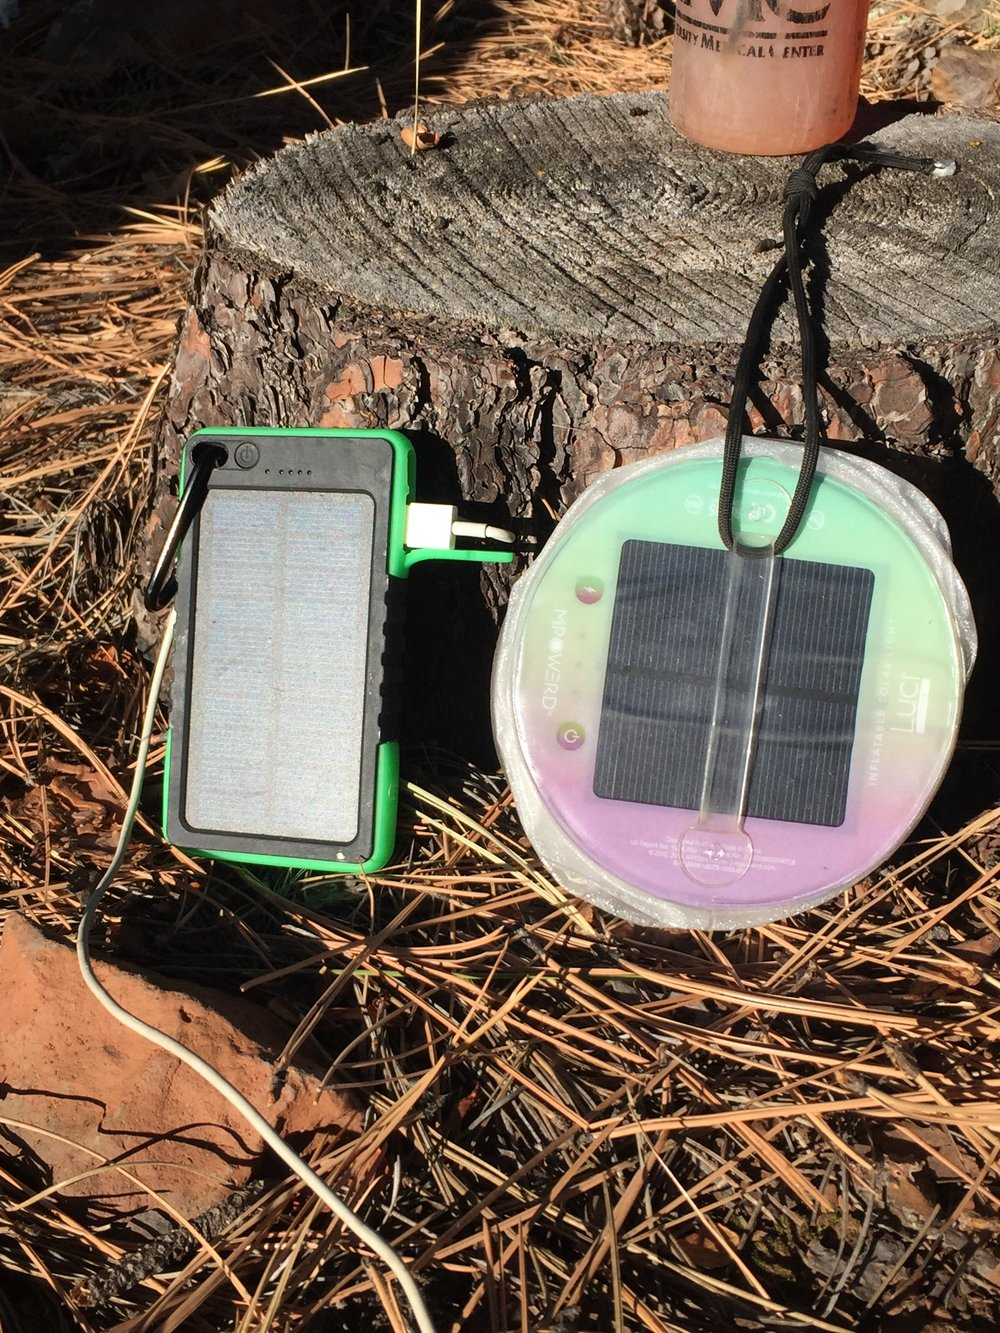 Last but not least, an up close of my solar power soaking up the sun. On the right is the previously mentioned Luci Light. On the left is the phone charger I was carrying that fell off. (Dang it!) It can be charged from a plug at home to carry extra power for your phone and is then supposed to recharge from the sun. I can attest to the fact that is will indeed charge from the wall, and hold a charge to refuel your phone. Because it fell off and got lost, I can't attest to how well the solar part works. If you want to try one yourself, it was very inexpensive. I had one similar to THIS. I'm hoping for a new one for Christmas and once I test out the solar functioning, I'll let you know. For the price though, even if the solar part isn't perfect, it is worth it for the bonus battery pack aspect.